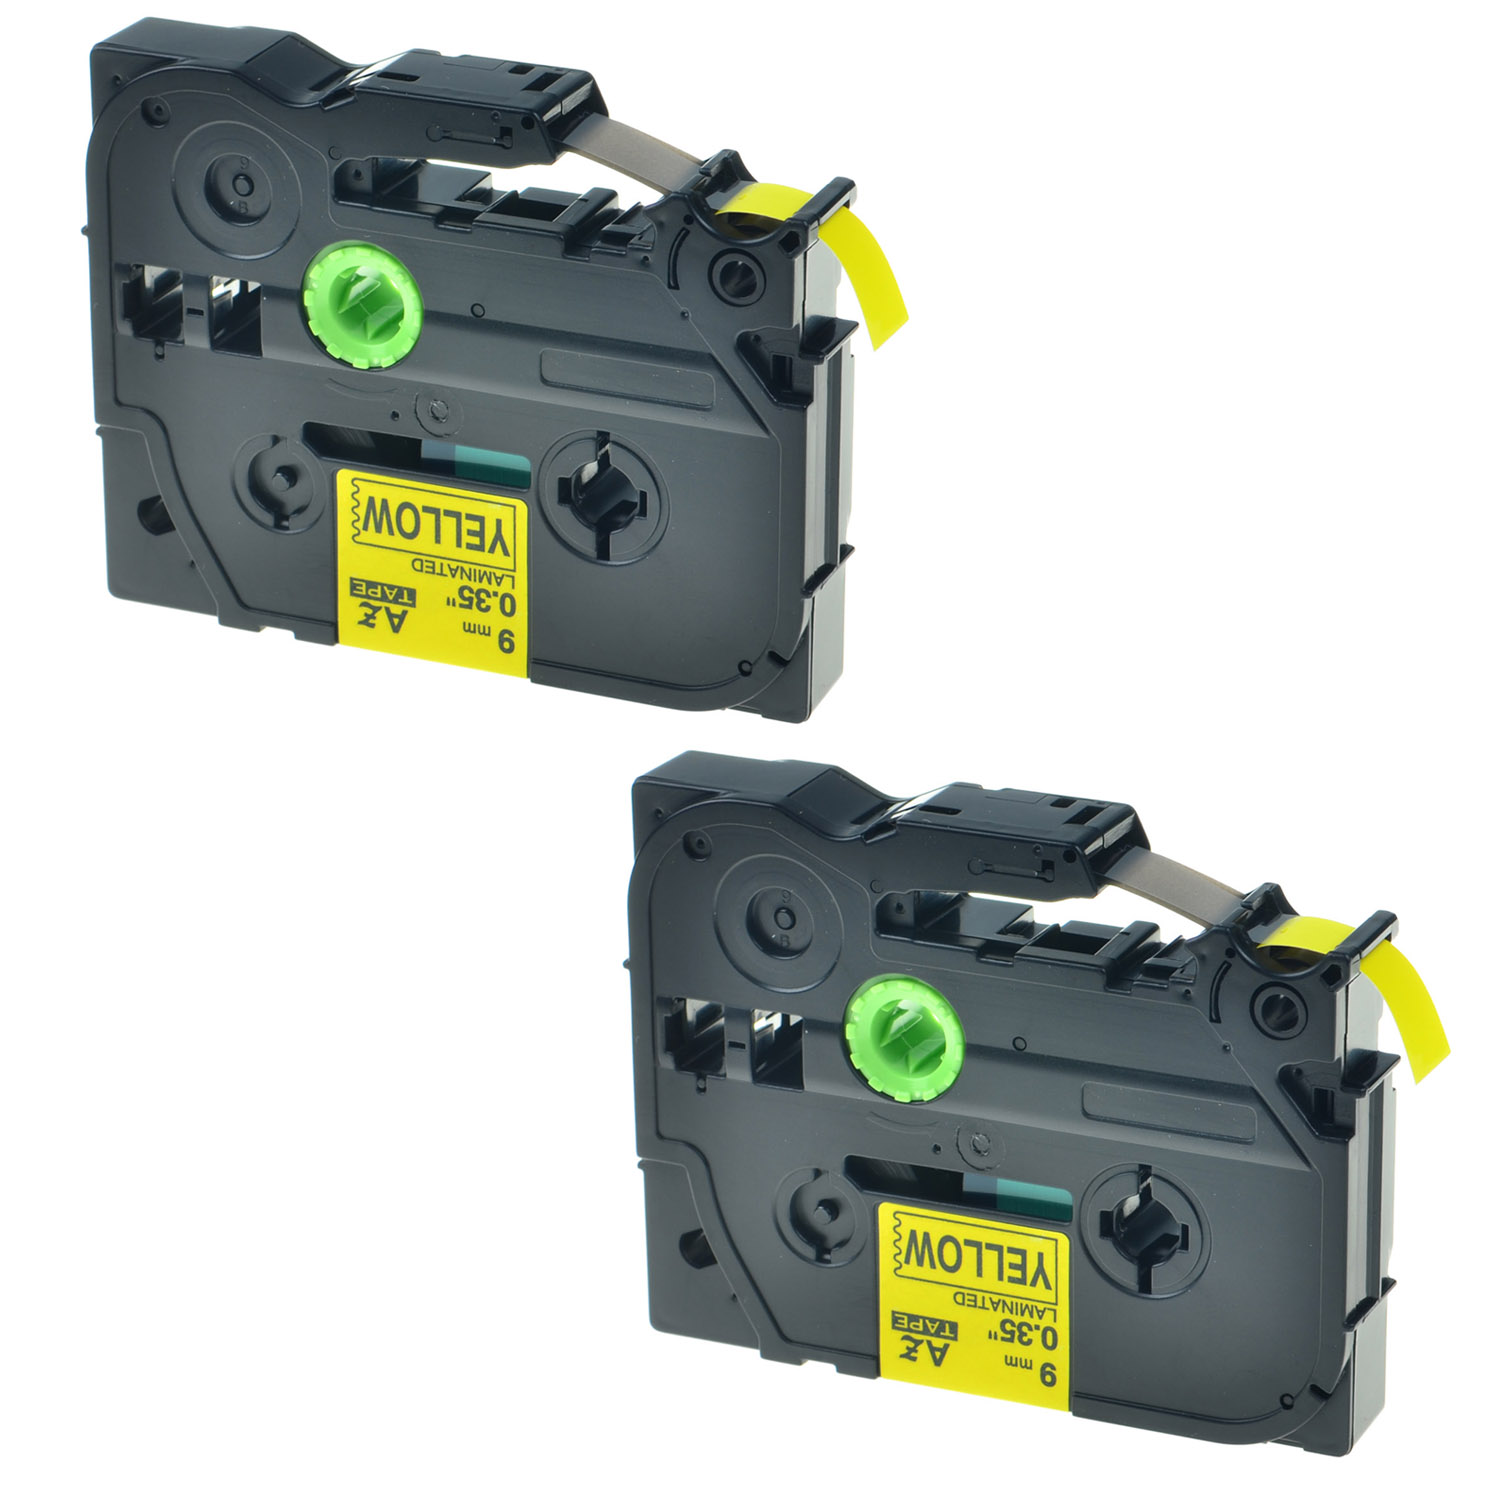 2PK Black on Yellow Label Tape For Brother TZe-621 TZ-621 PT-D210 P-touch 9mm 8m